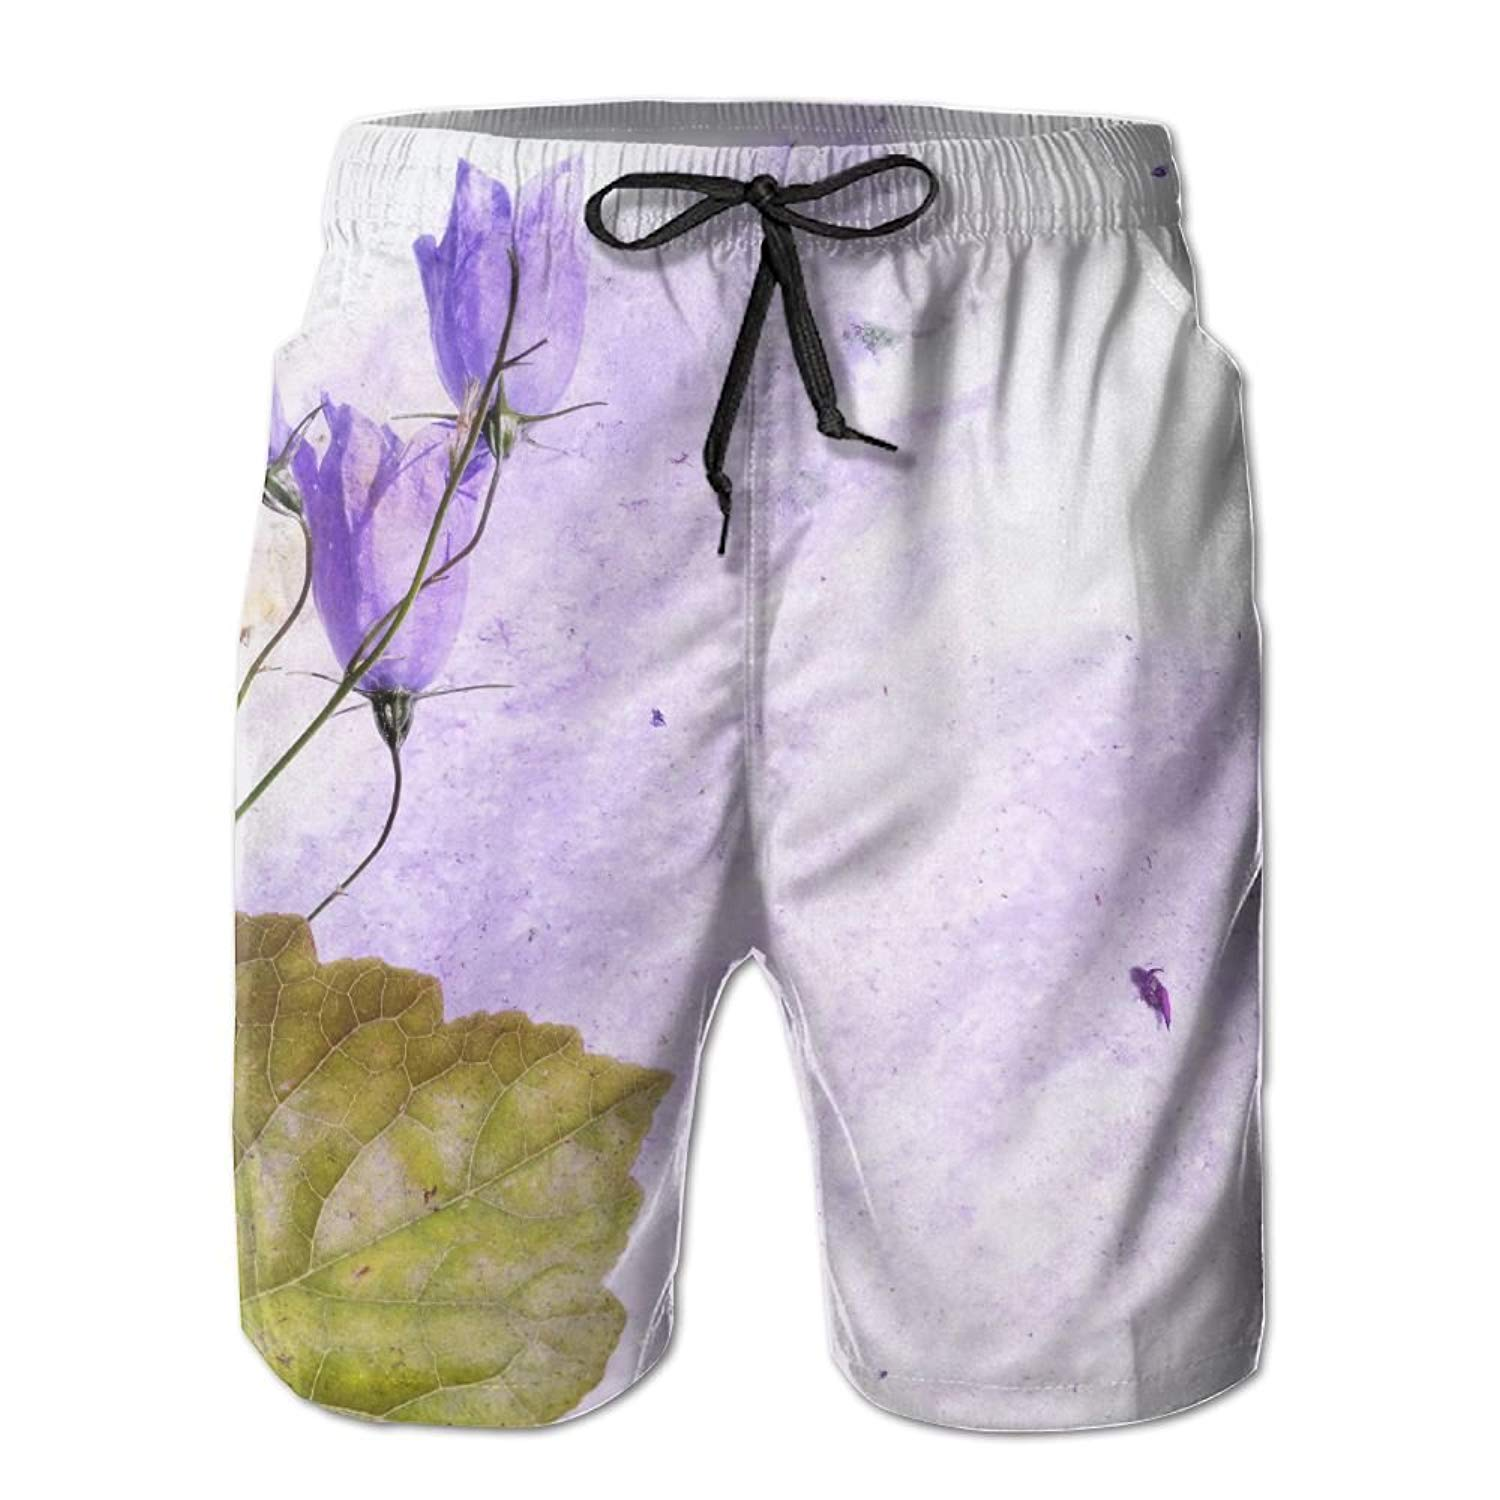 Richard-L Colorful Illustration With Floral Elements Useful Design Element Summer Quick Dry Board/Beach Shorts For Men